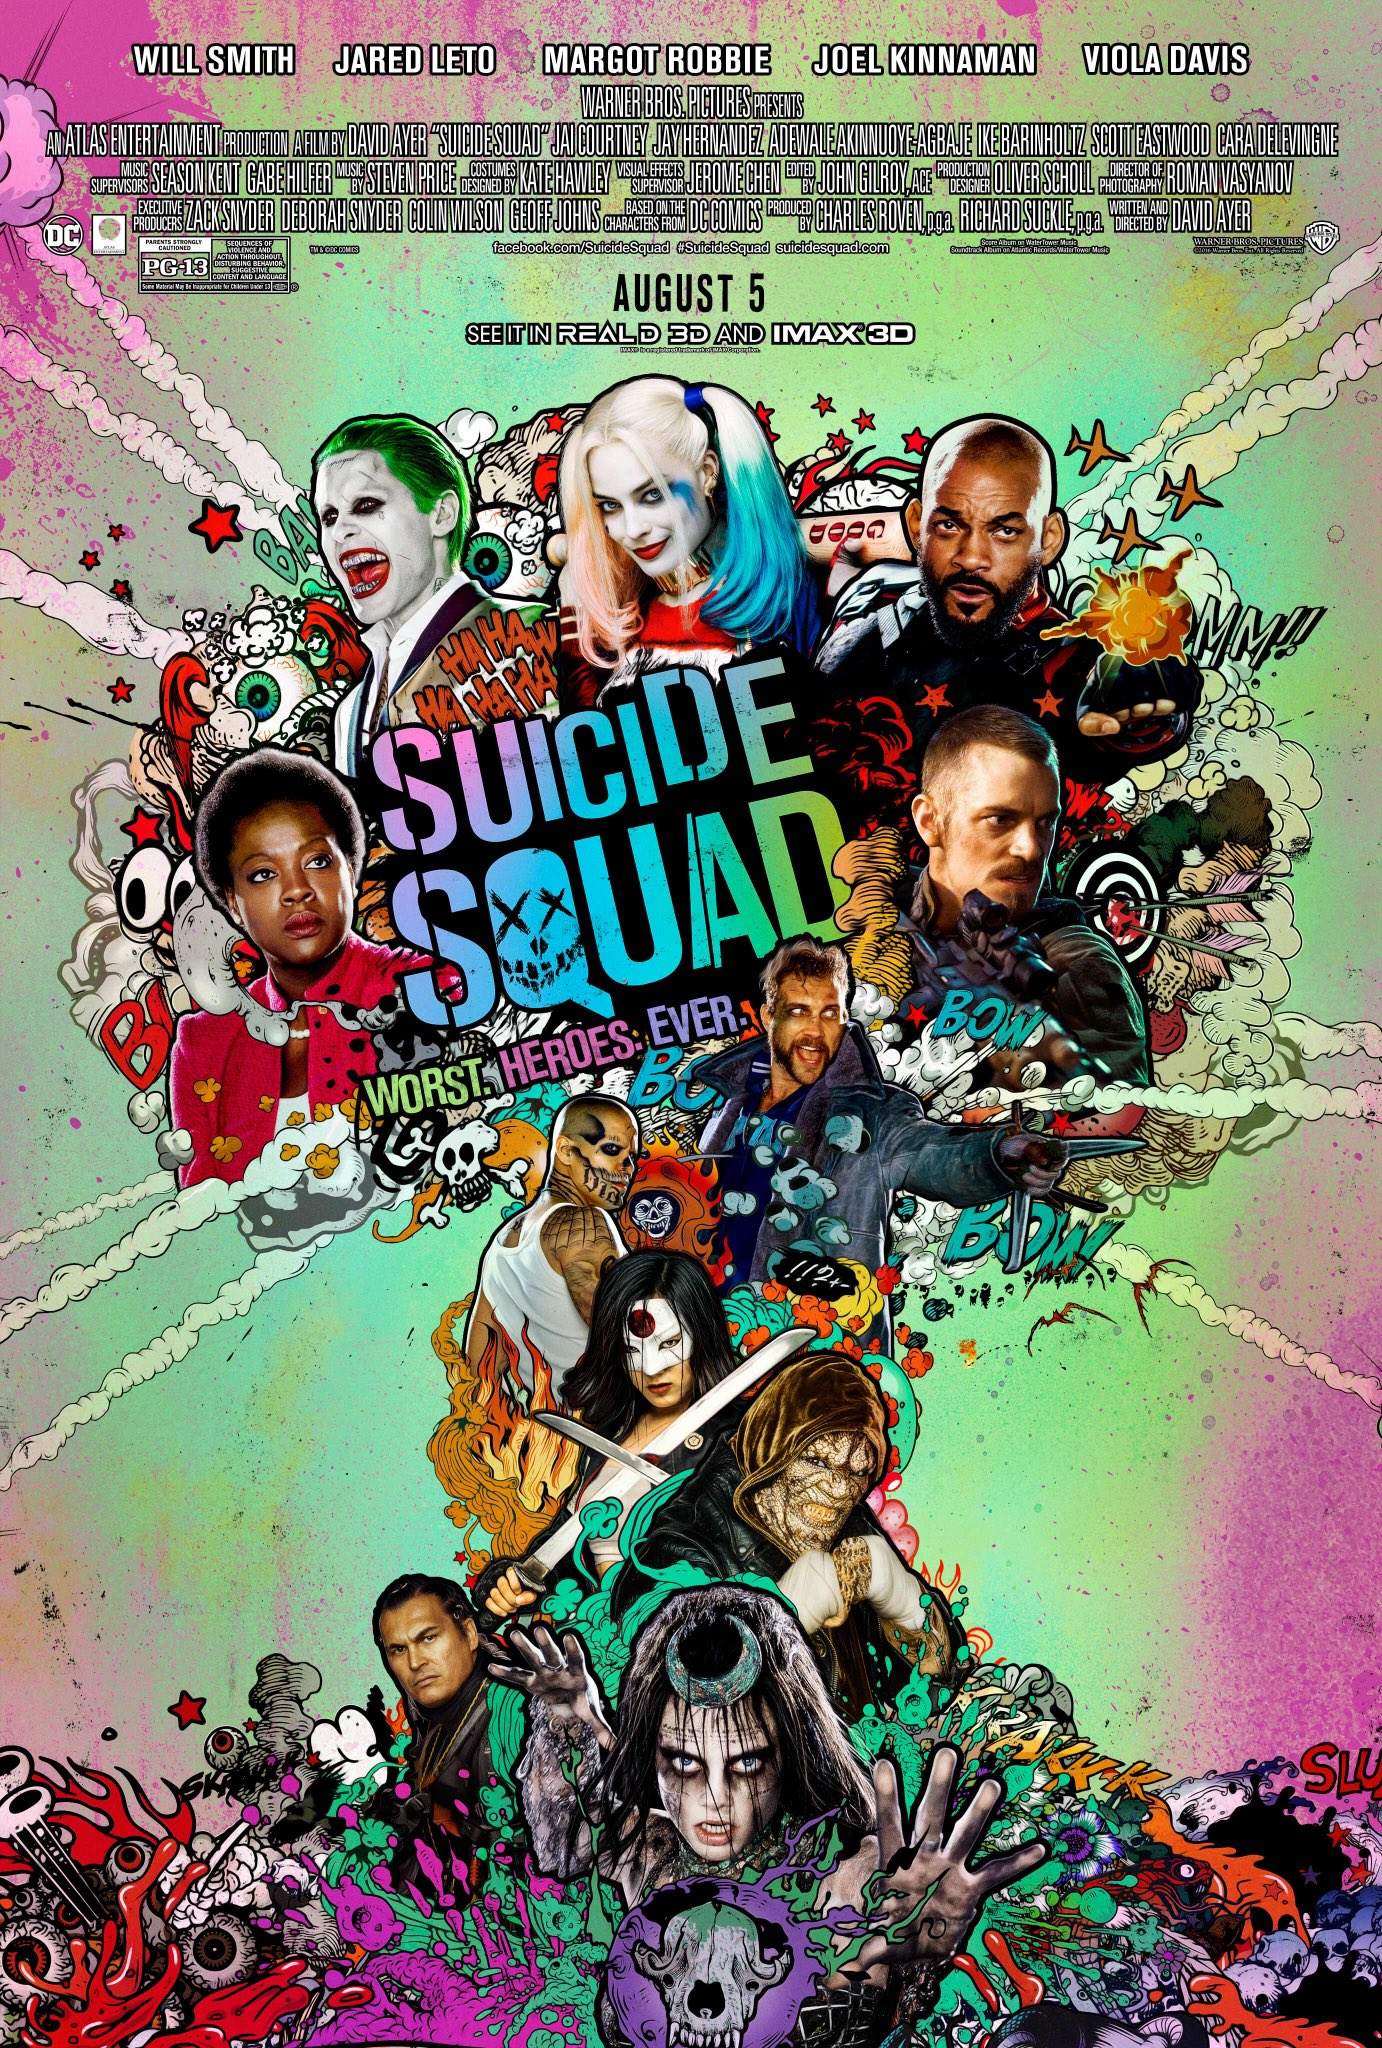 Suicide Squad - Worst. Heroes. Ever. - Poster